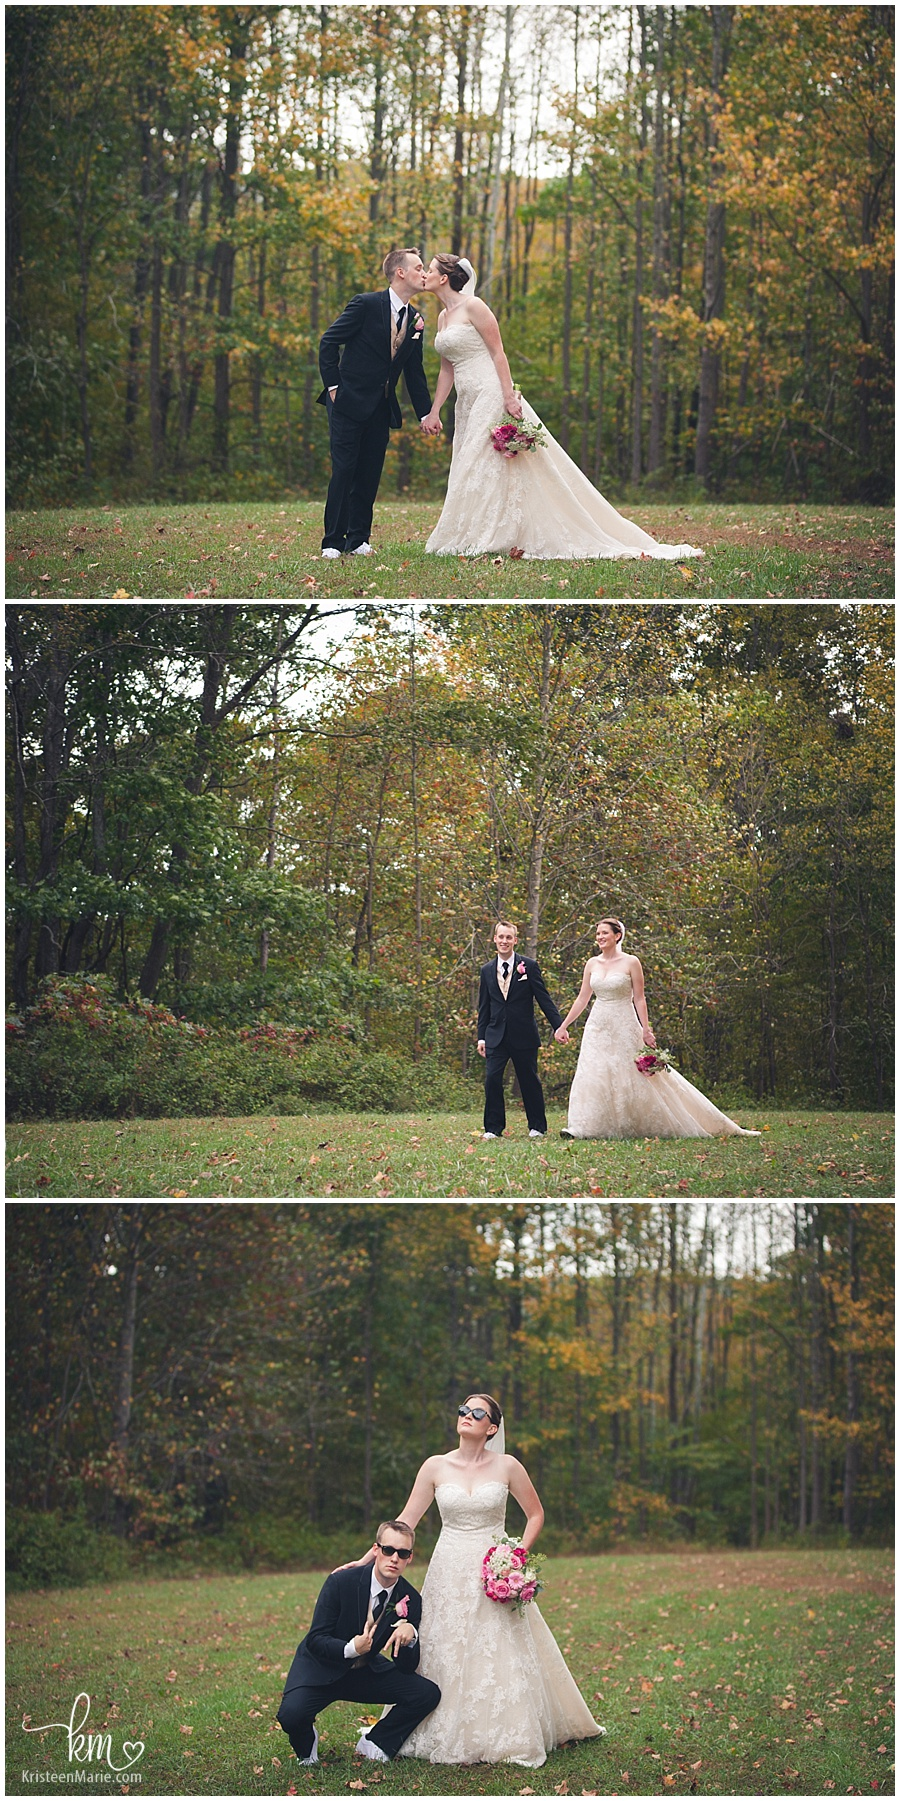 wedding pictures of bride and groom at Brown County State Park in Indiana